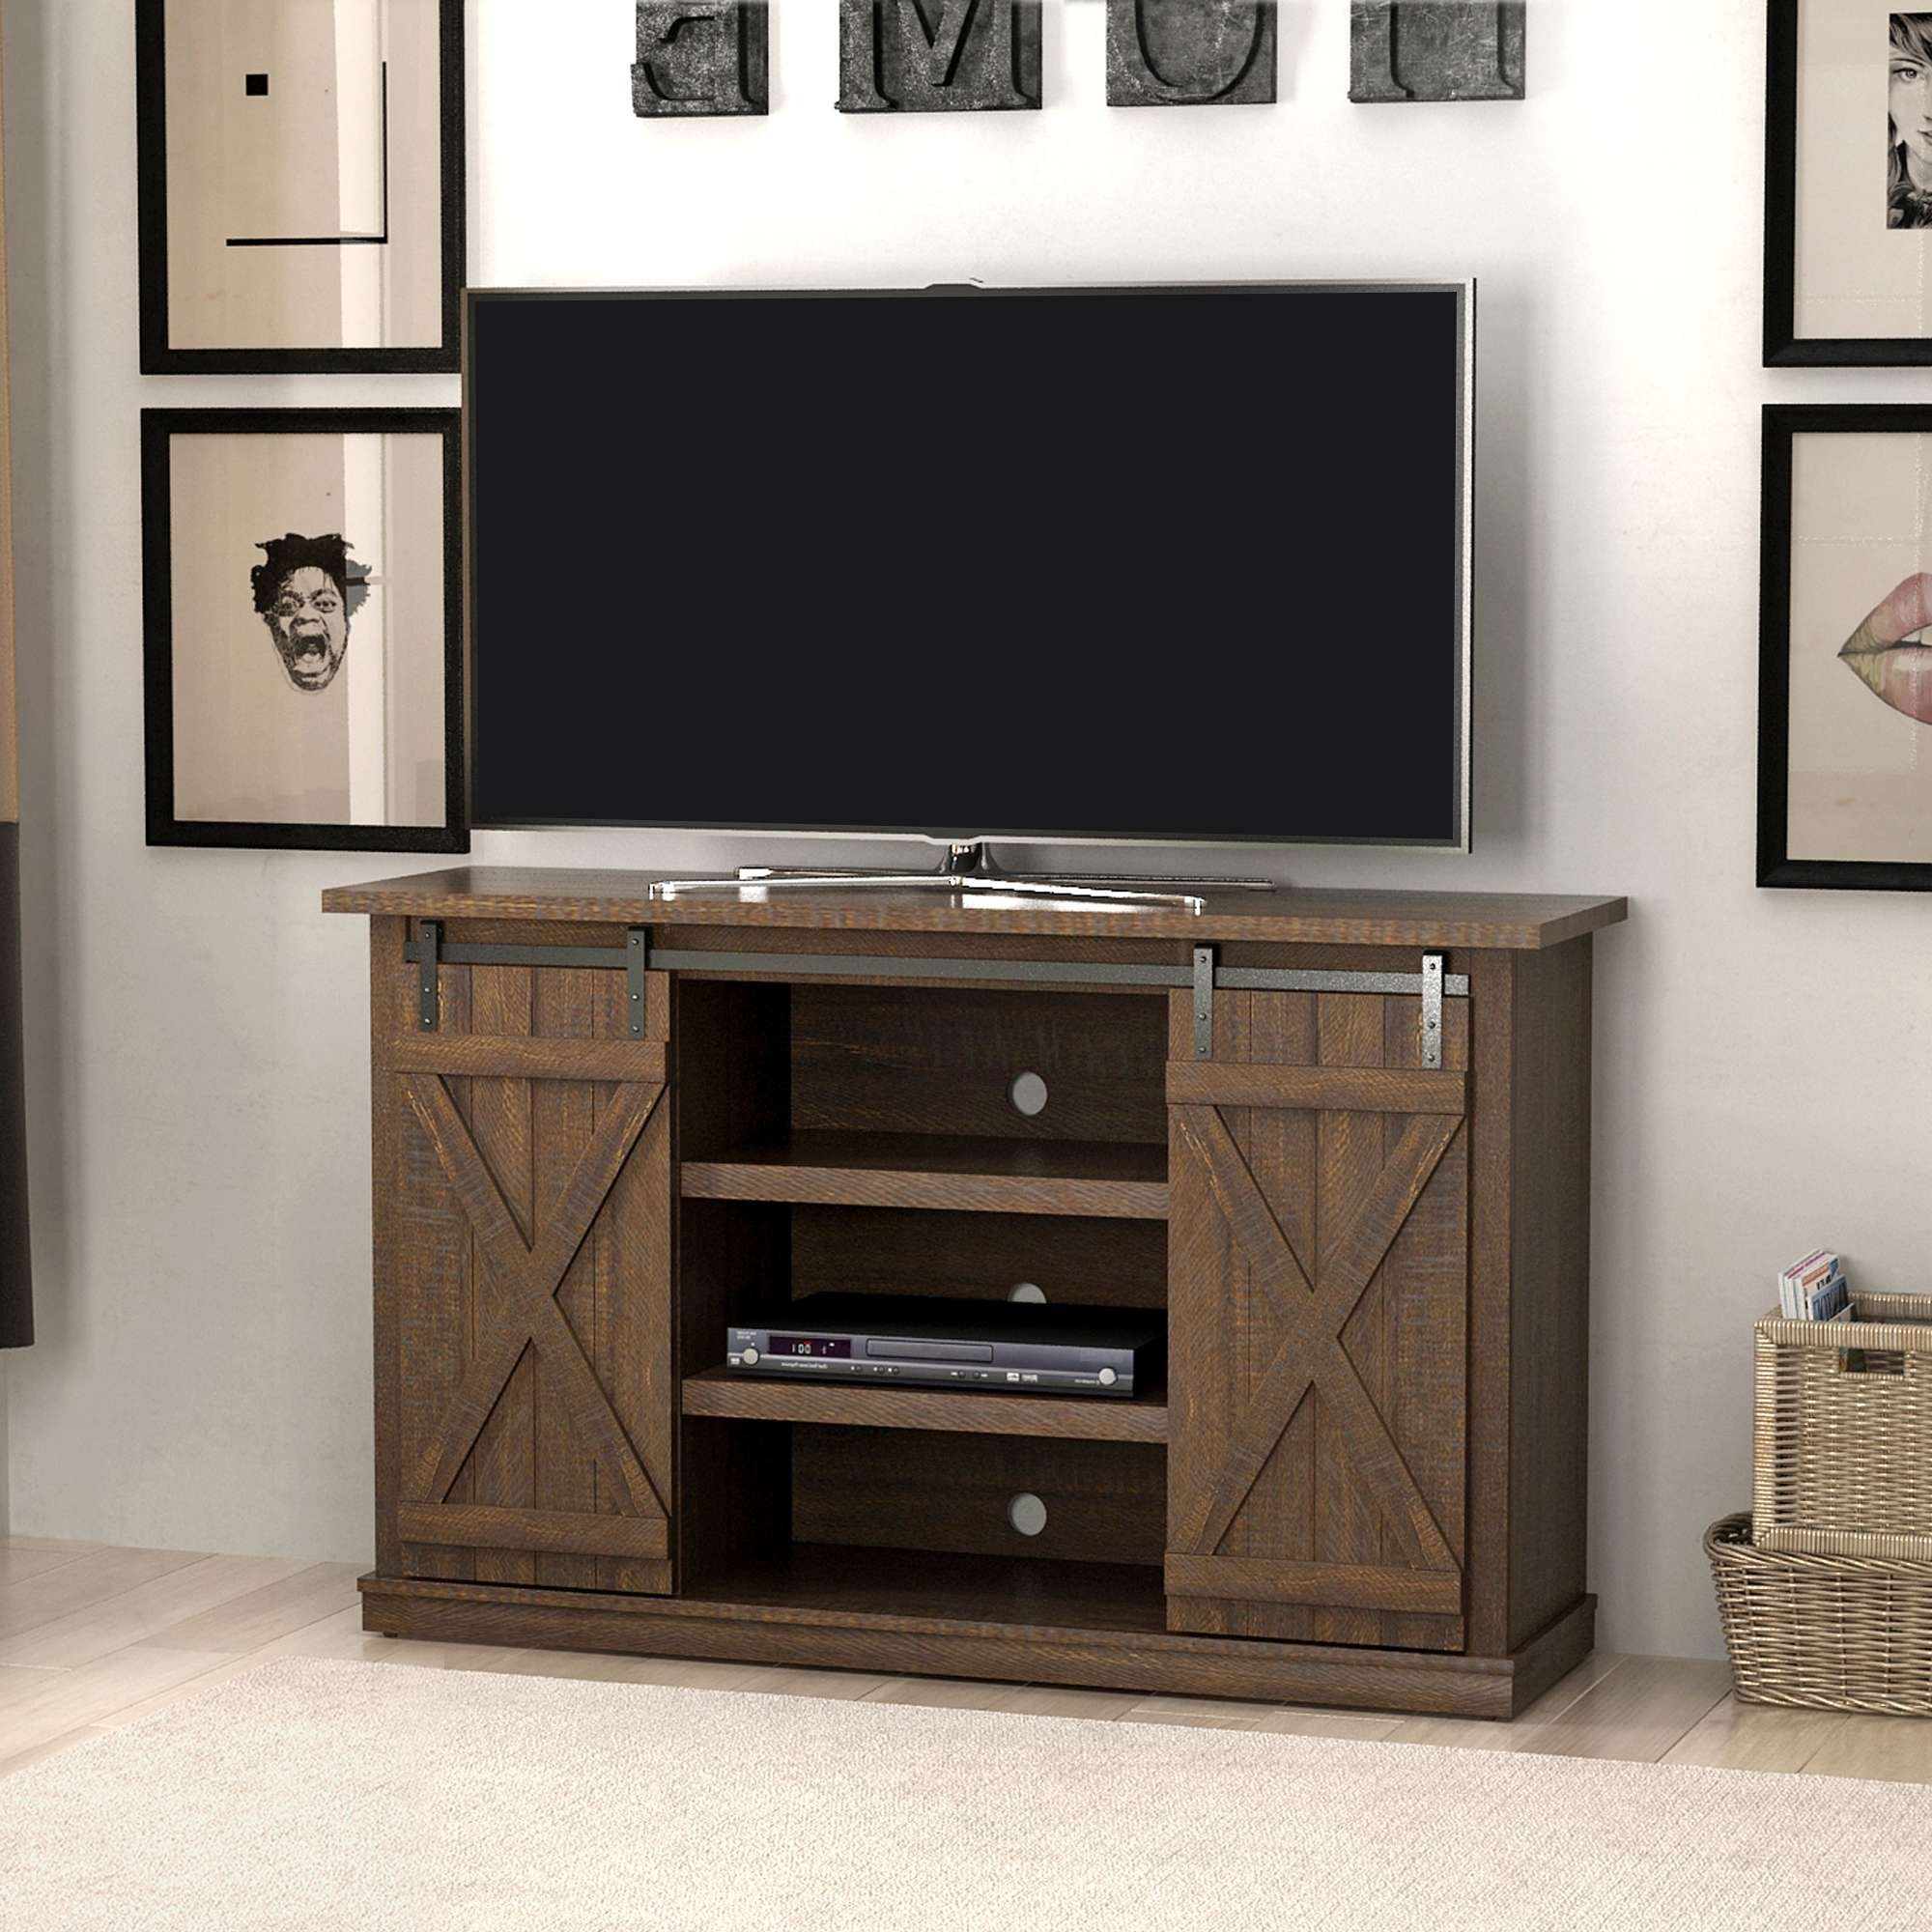 Tv Stands – Walmart In Country Tv Stands (View 12 of 15)